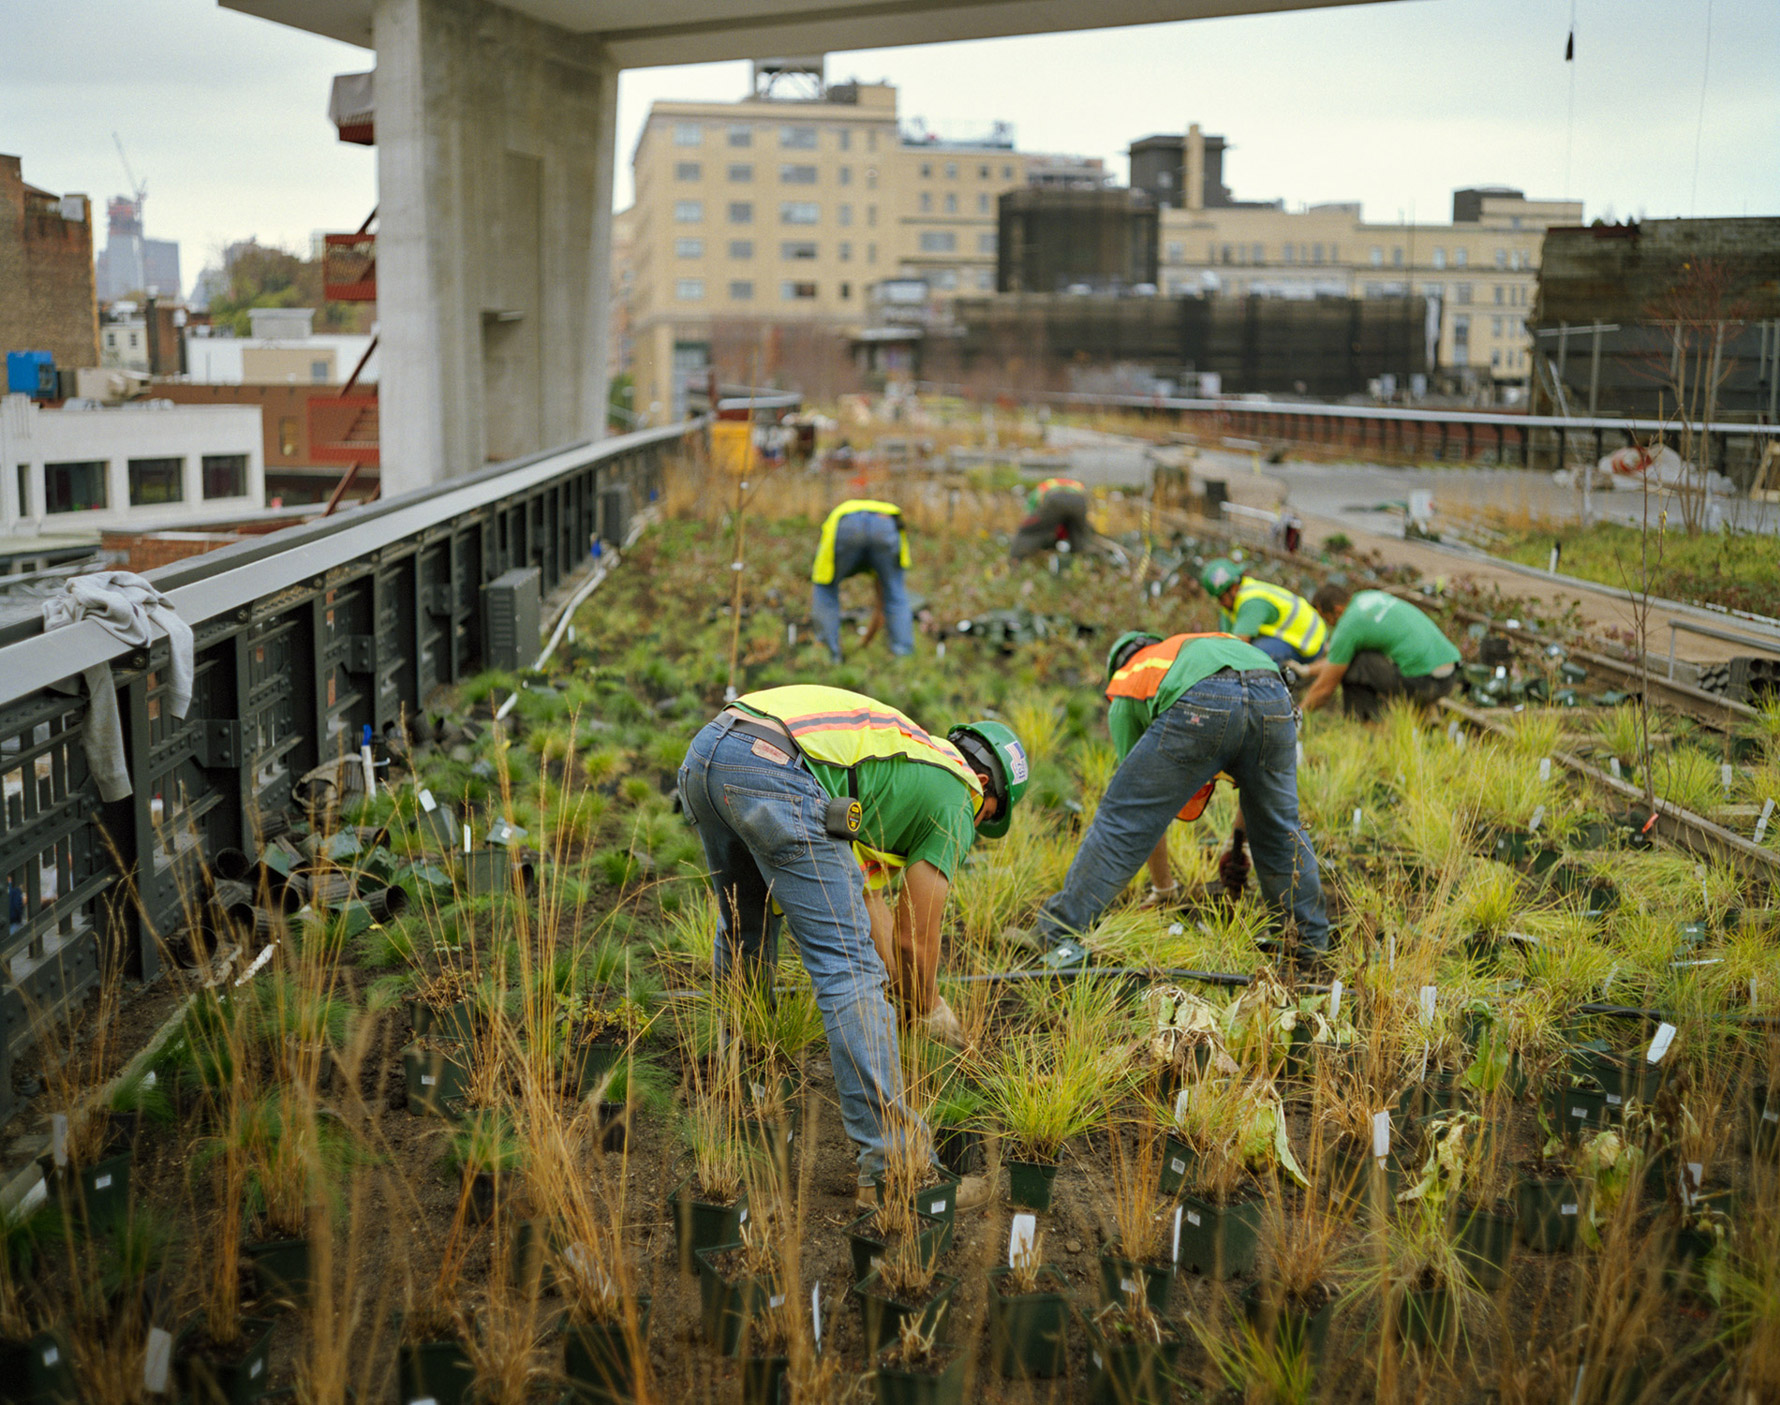 People digging up plants on an abandoned railway